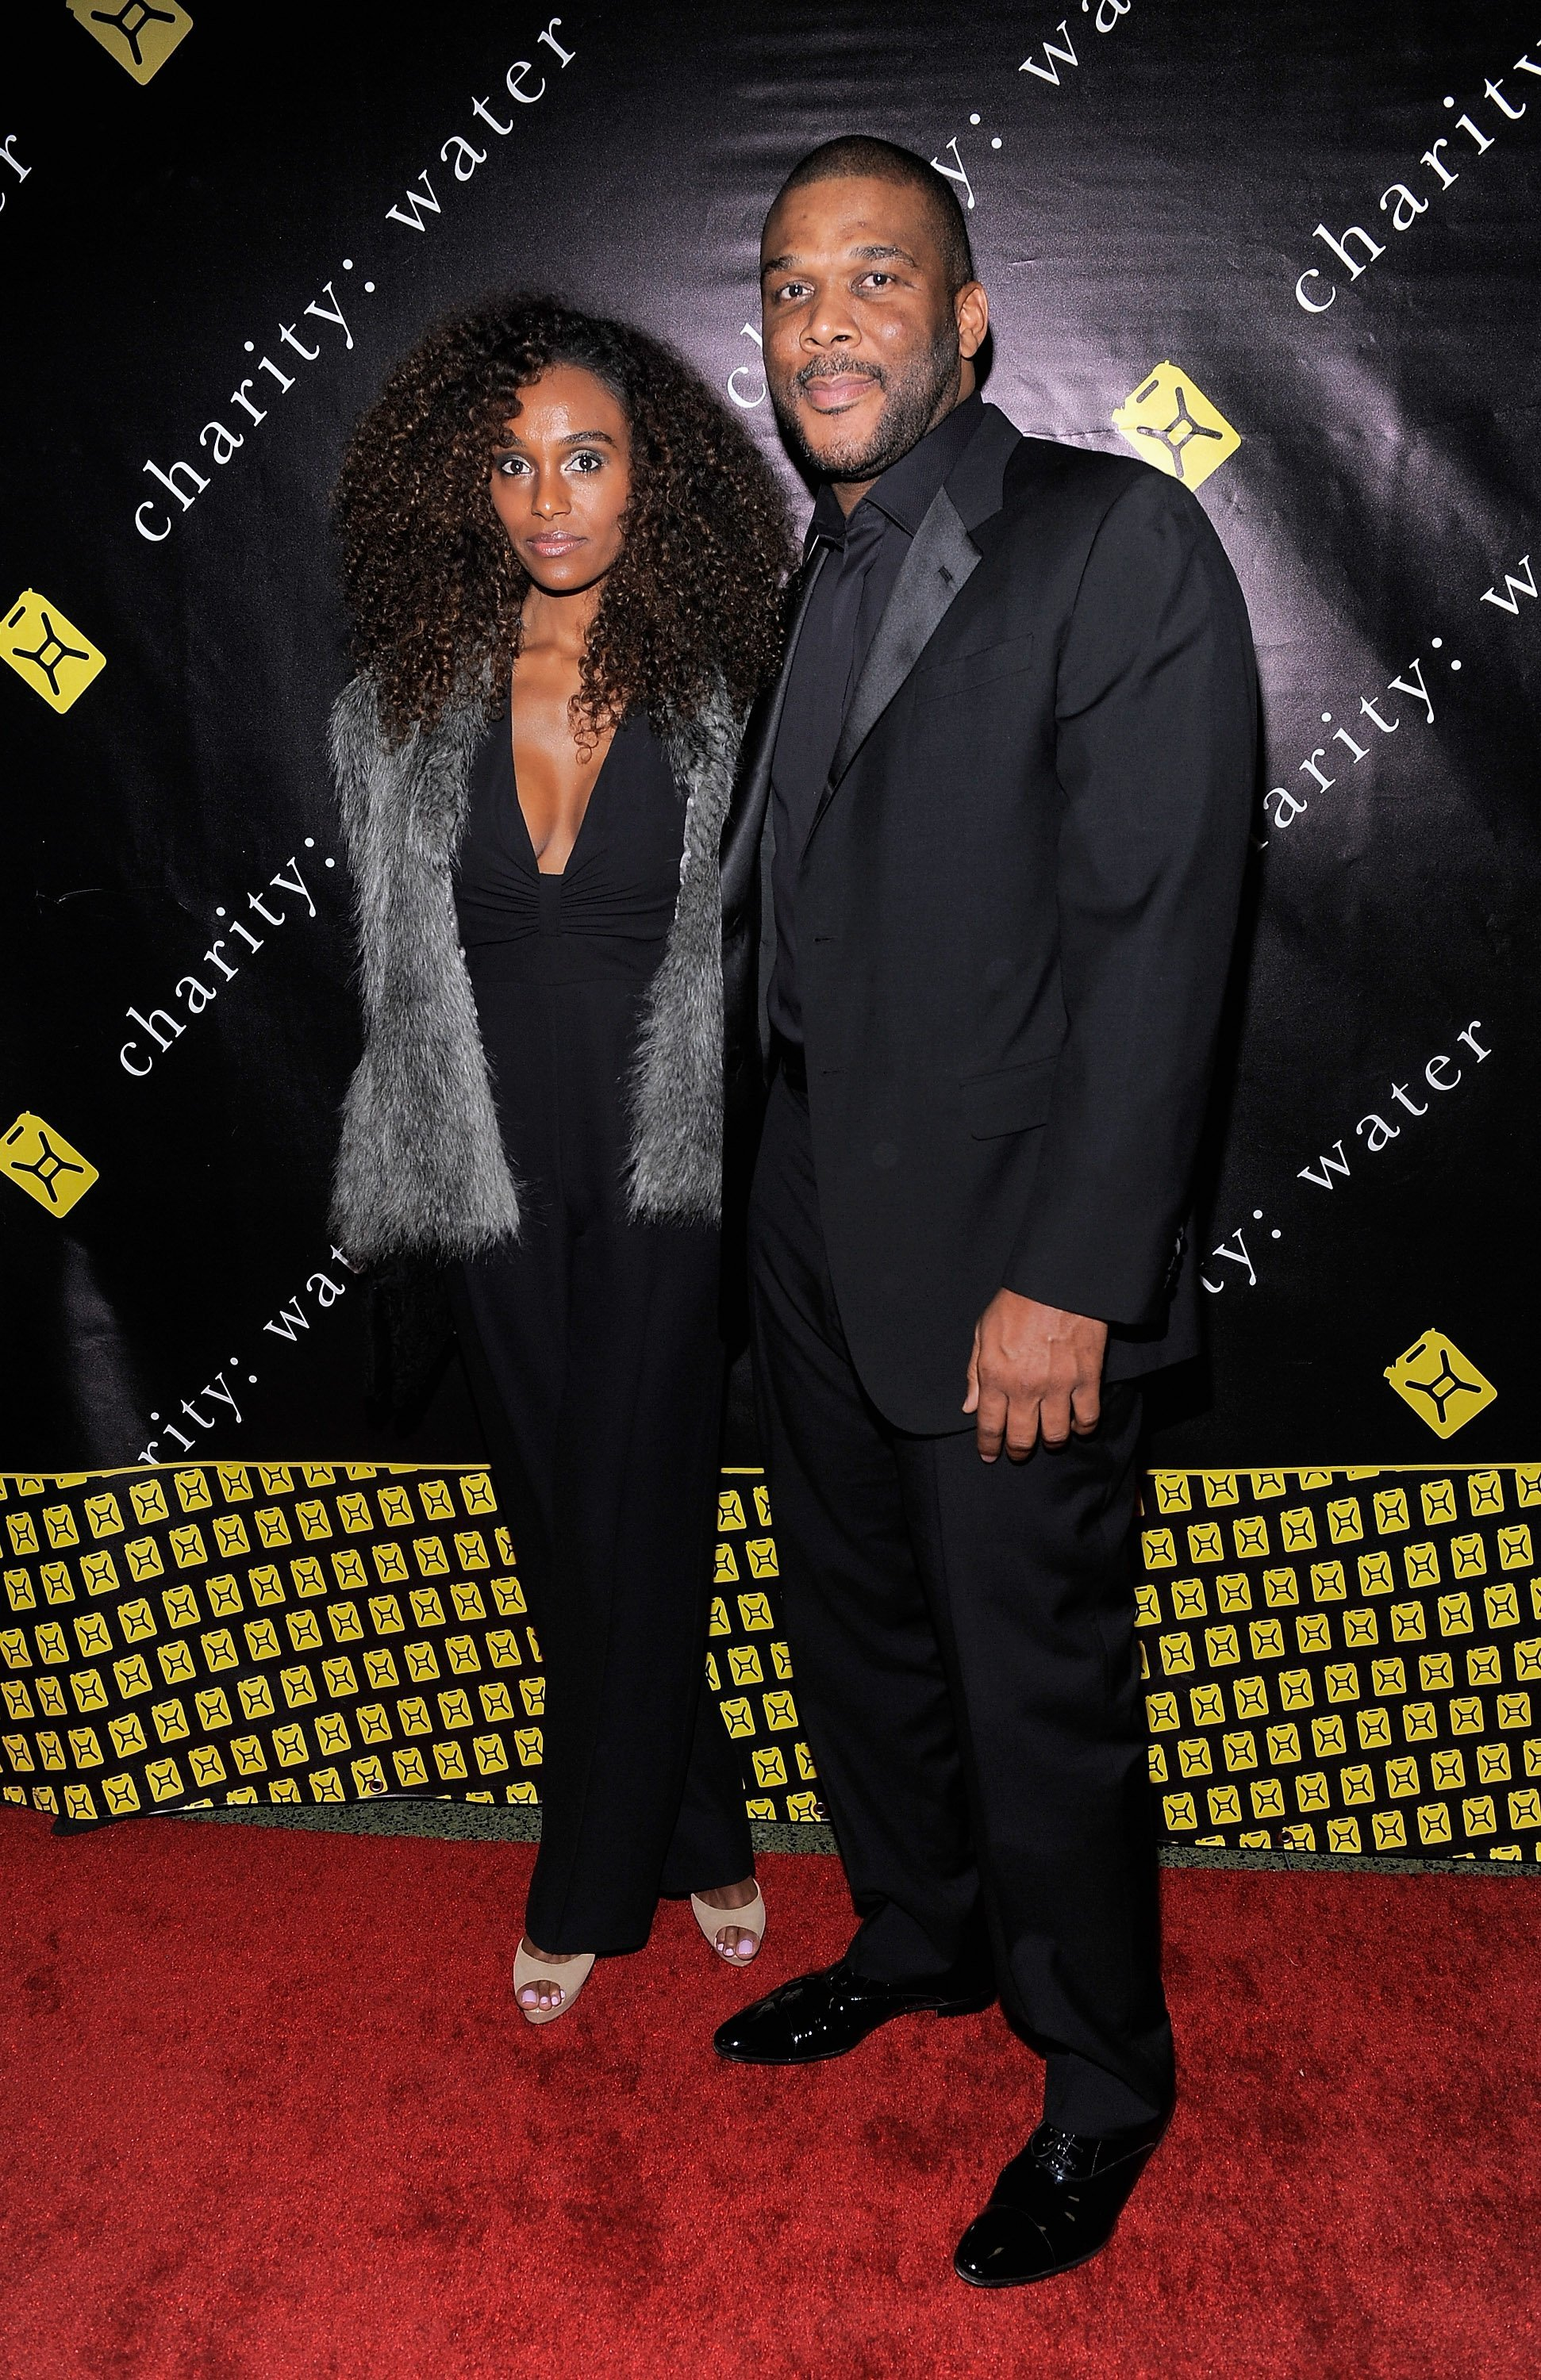 Gelila Bekele and Tyler Perry at the 6th Annual Charity Ball benefiting Charity Water. 2011. | Photo: GettyImages